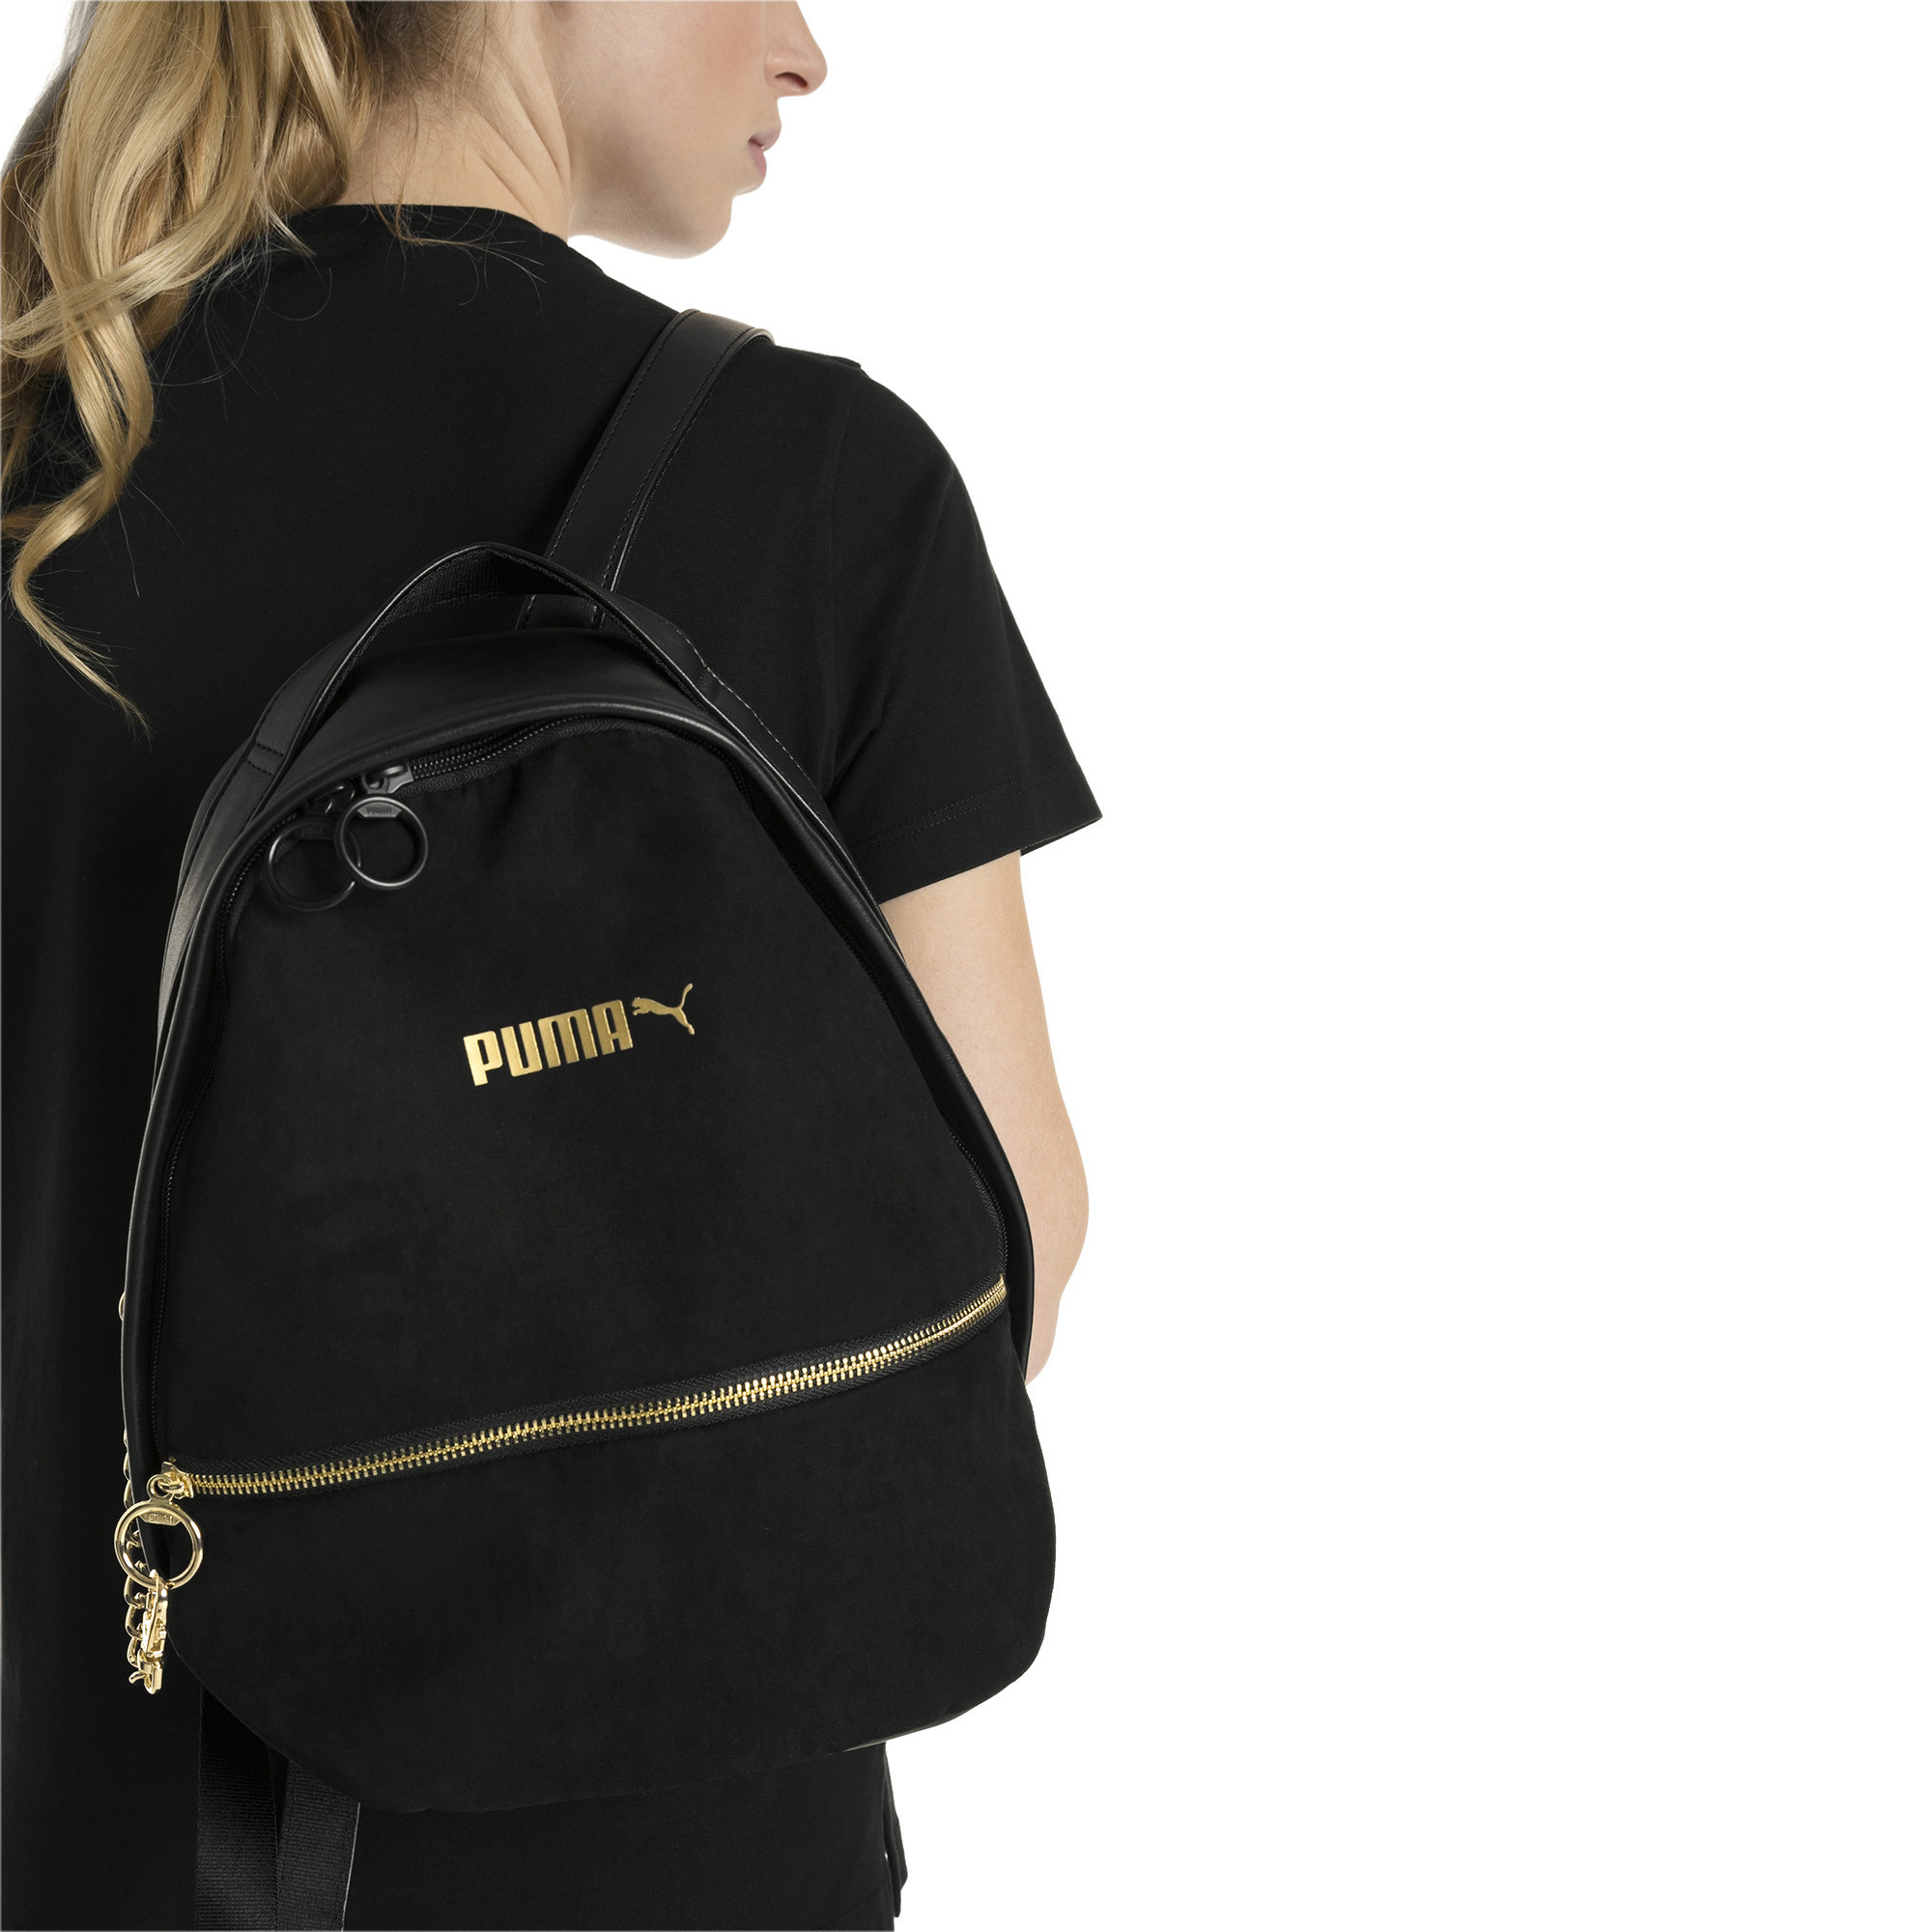 ad9a204d64 Image Puma Archive Suede Women s Backpack  1